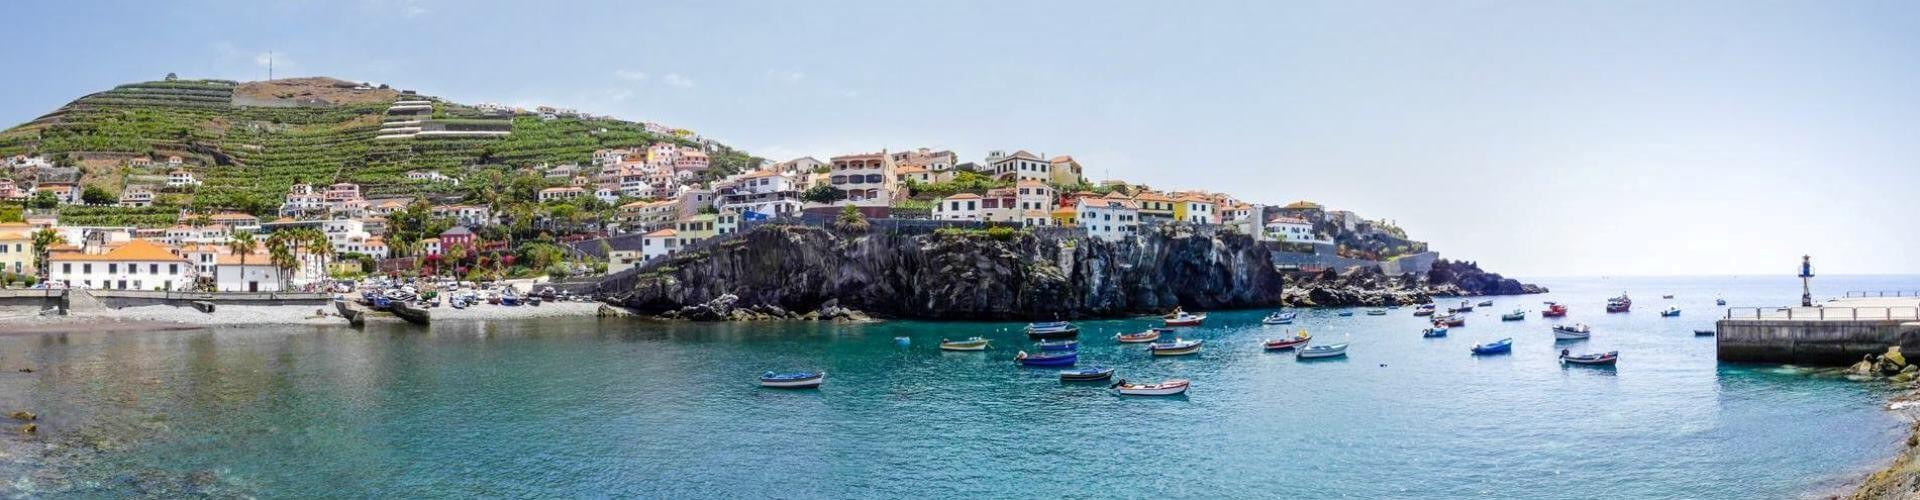 Câmara de Lobos Hop On Hop Off Sightseeing Bus